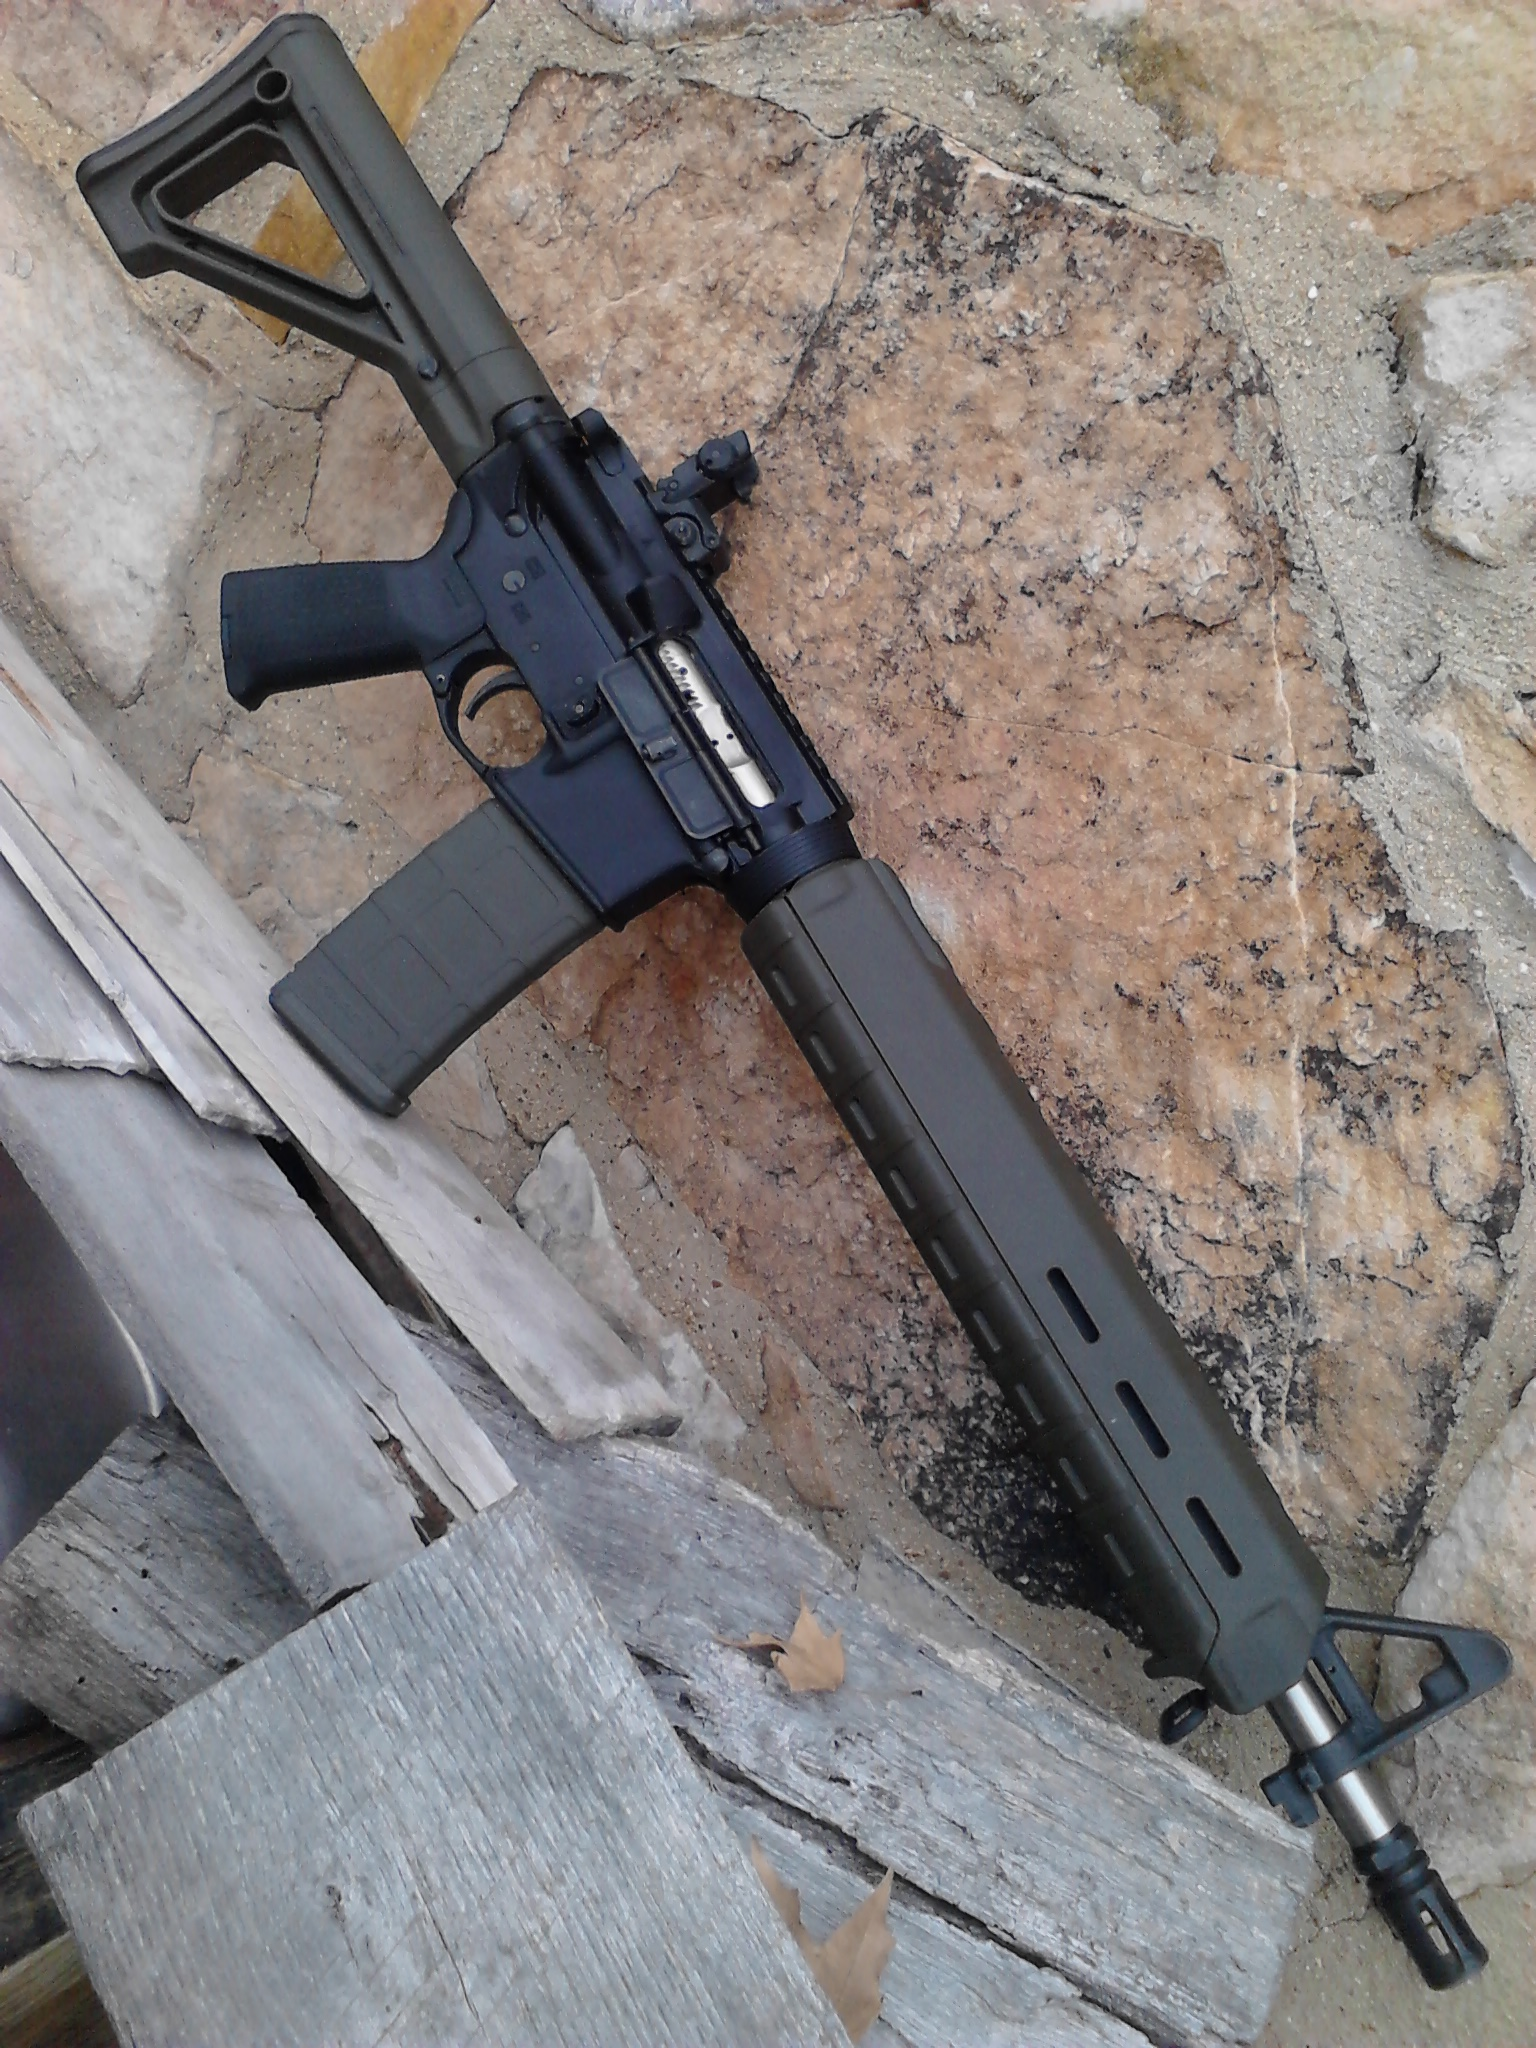 Ar 15 Fixed Skeleton Stock : fixed, skeleton, stock, Magpul, Fixed, Stock, Review, Forum